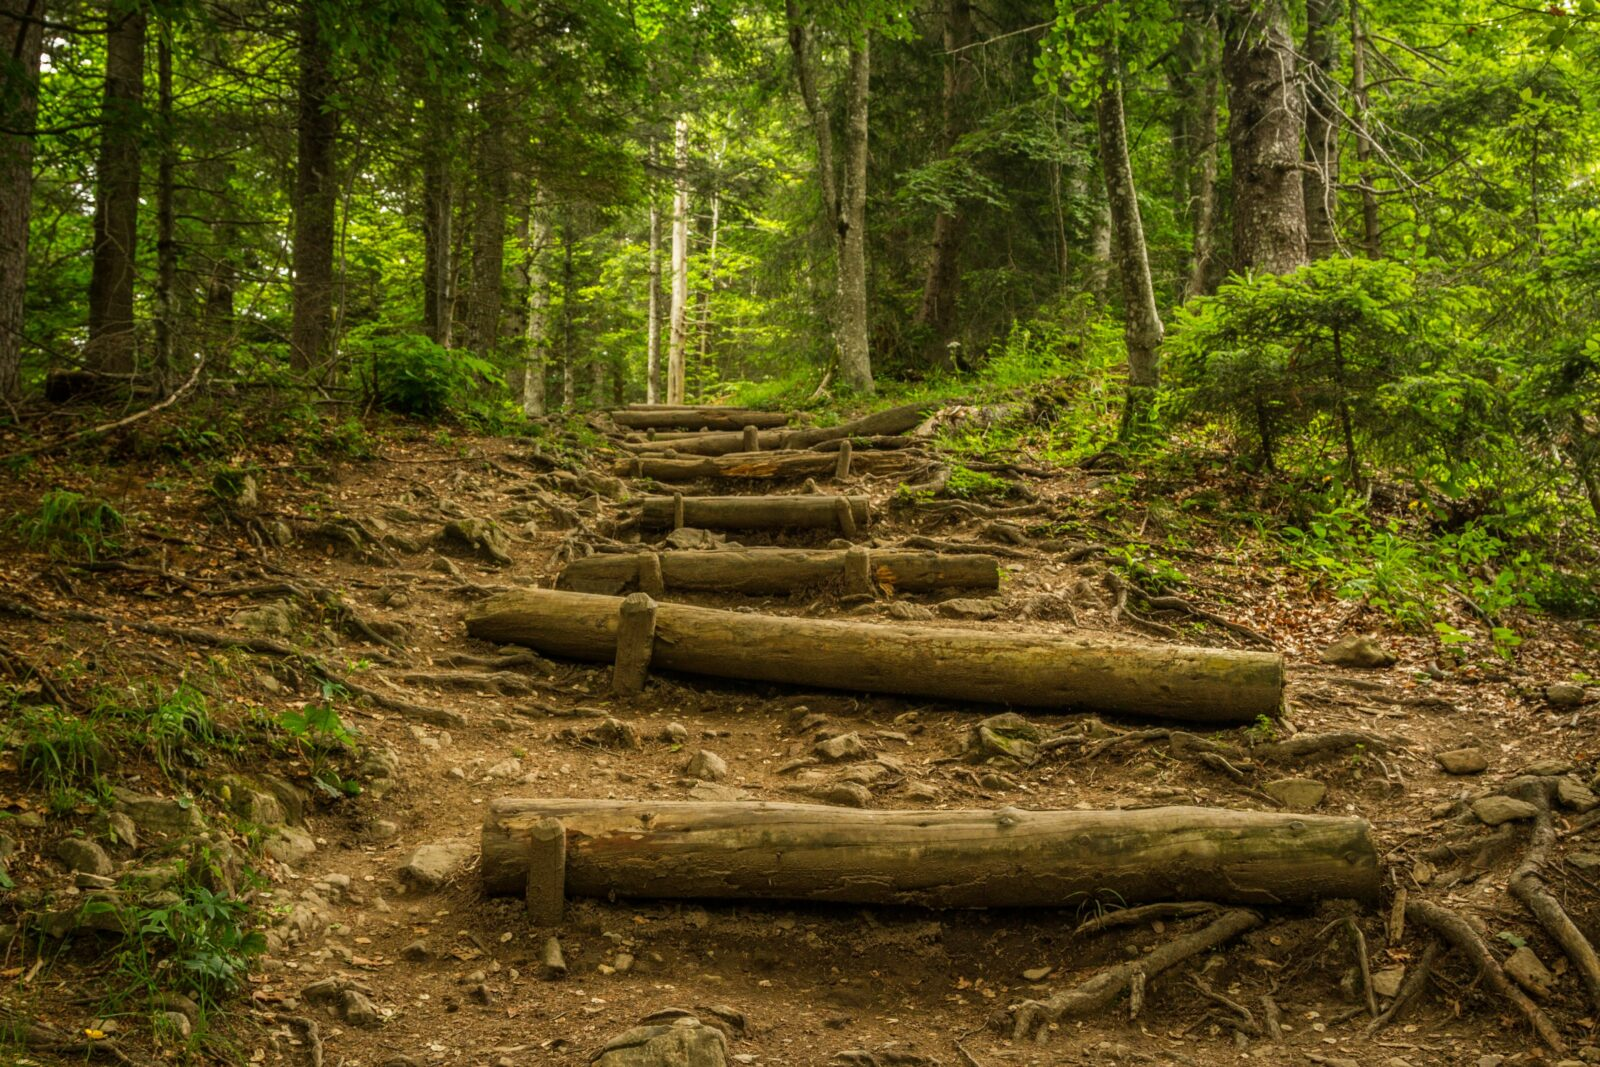 Steps going up into a forest